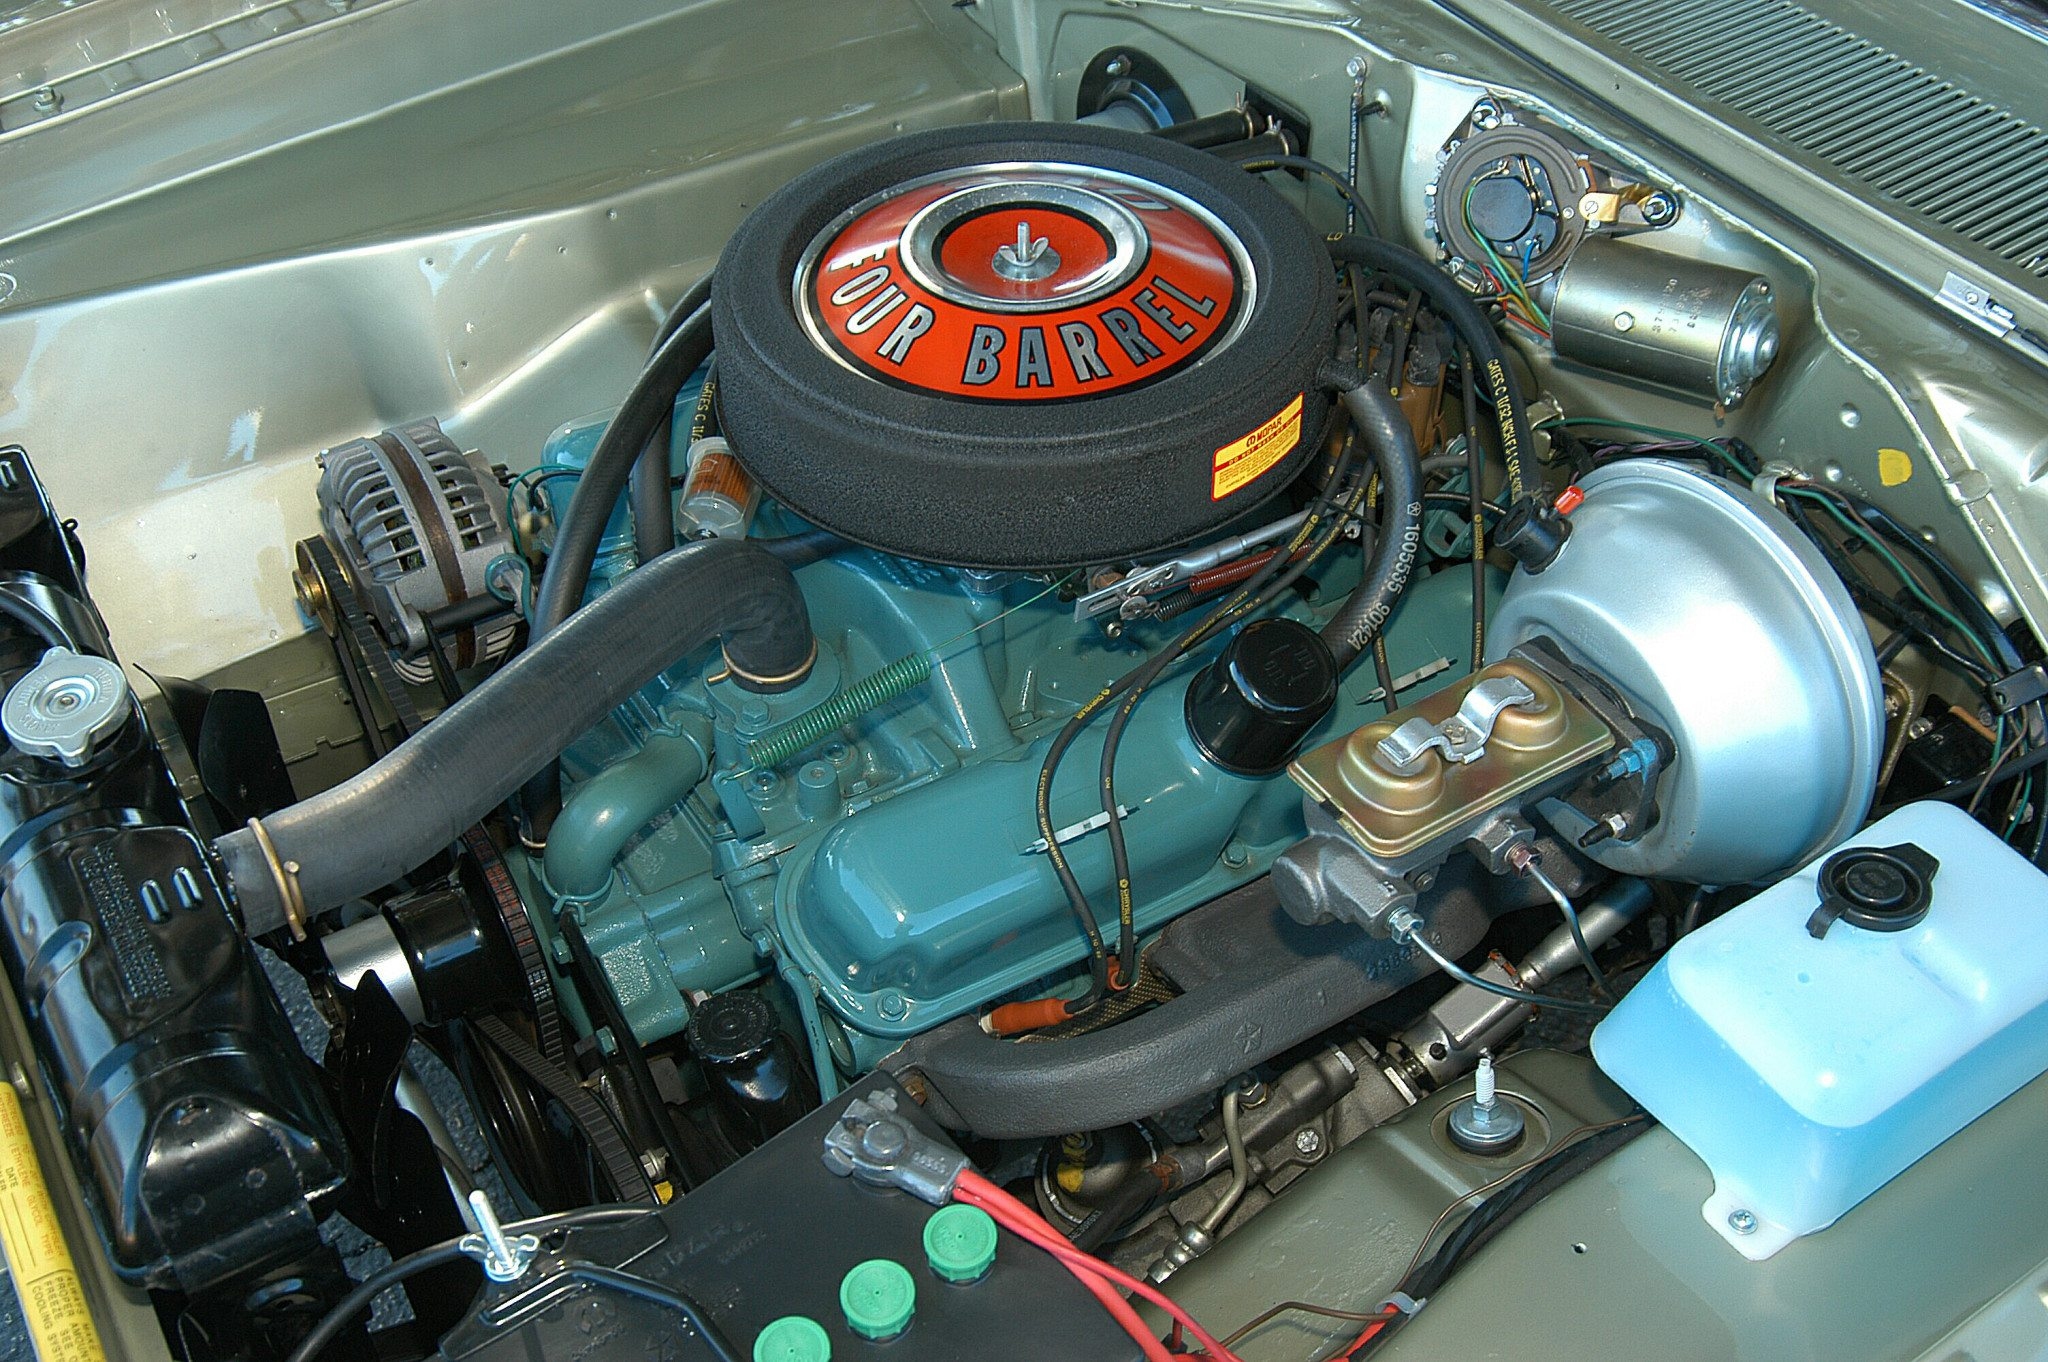 1969 Dodge Dart 340 GTS V8 Engine